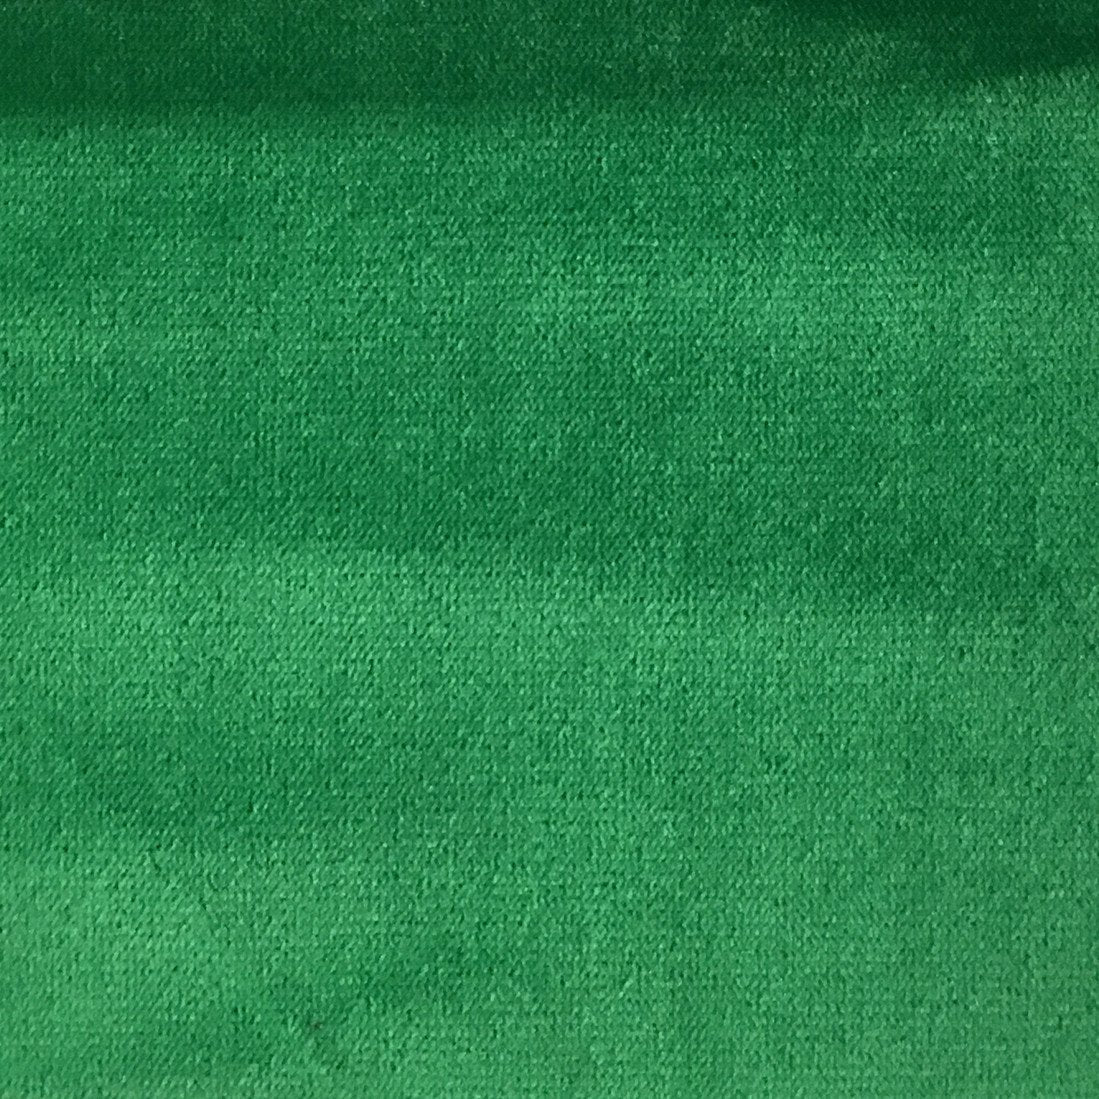 Suede Upholstery Fabric >> Byron - Sateen Velvet Upholstery Fabric by the Yard - 49 Colors